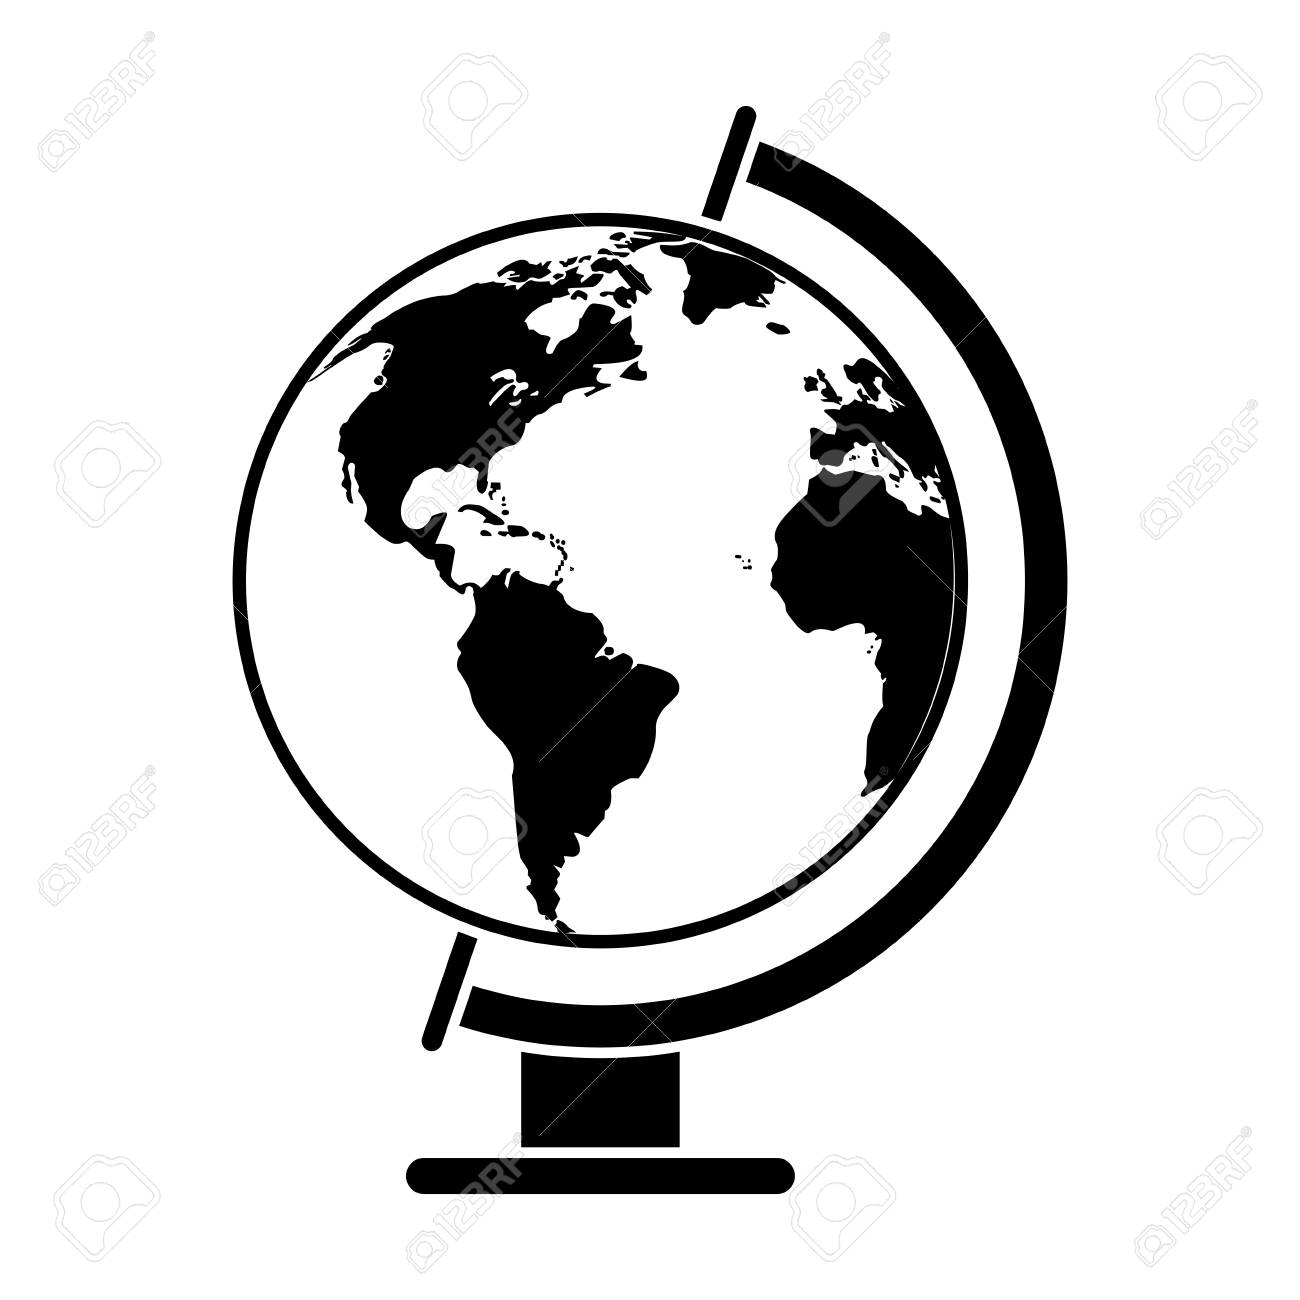 Globe world map pictogram vector illustration royalty free cliparts globe world map pictogram vector illustration stock vector 76312669 gumiabroncs Image collections